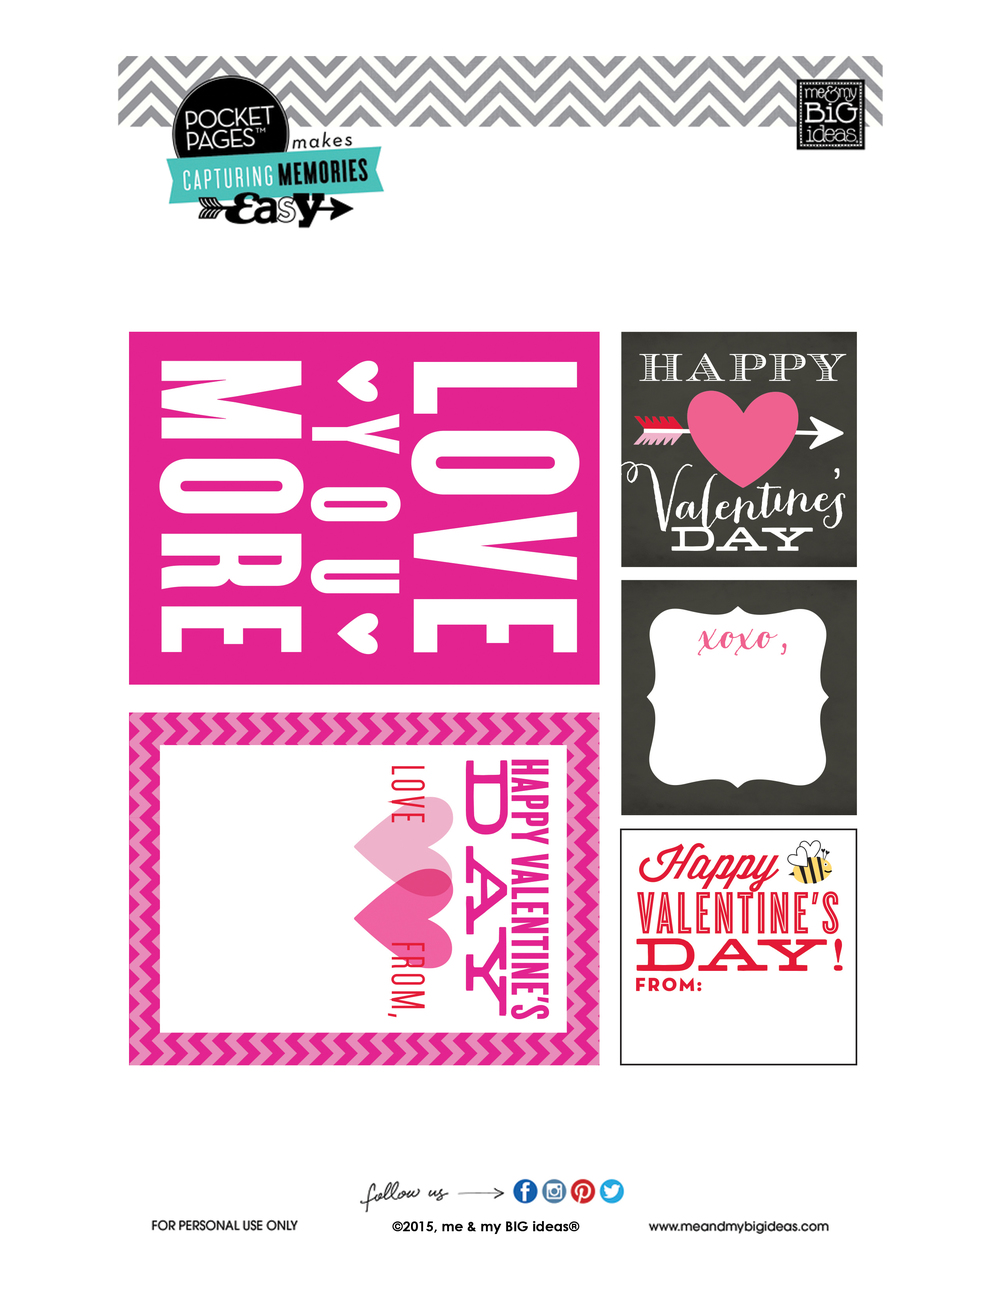 Valentine's POCKET PAGES™ Free Printable 04 | me & my BIG ideas